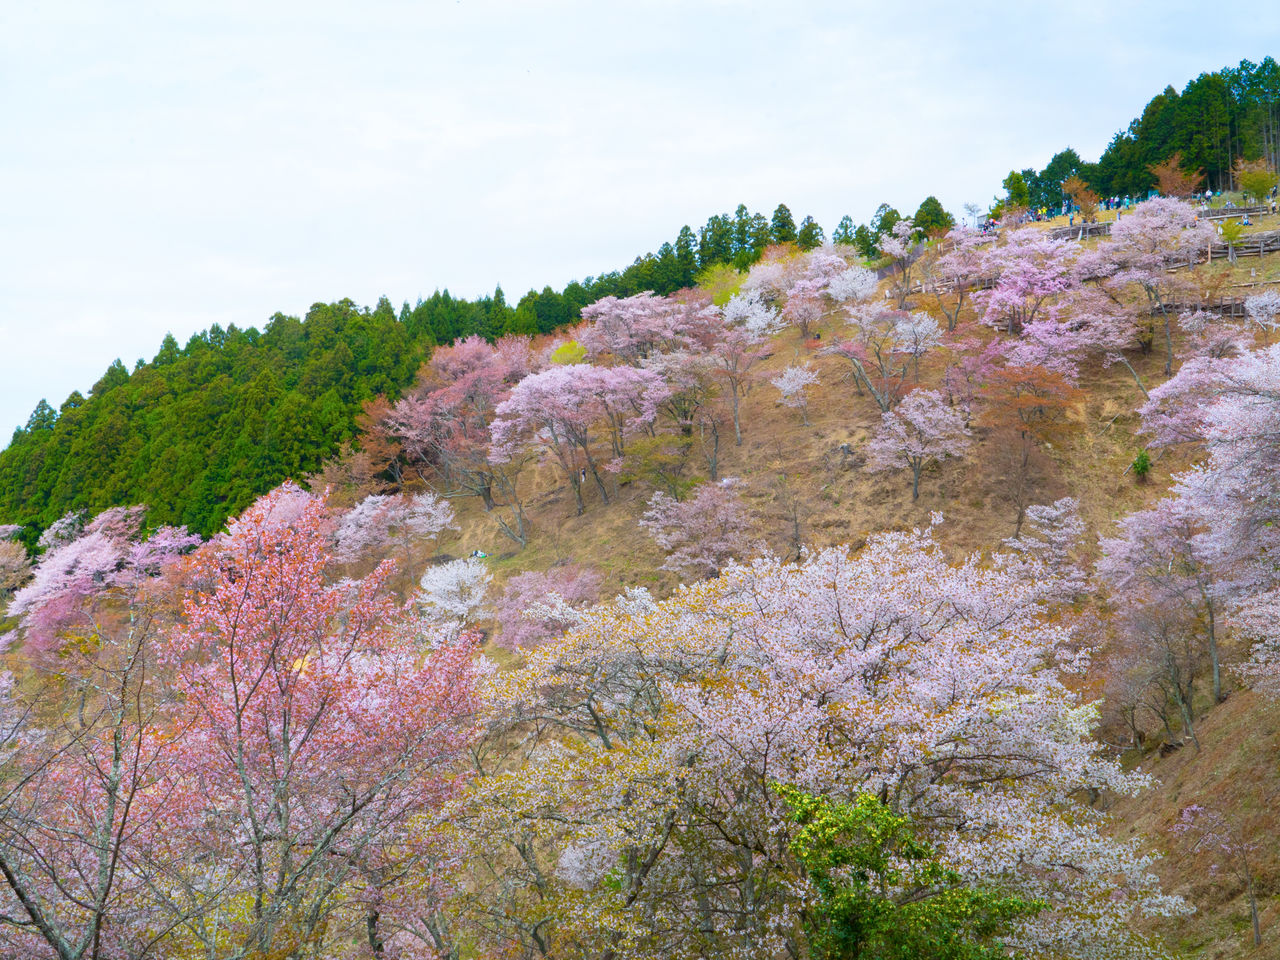 Some 30,000 cherry trees in some 200 varieties bloom here, chief among these being shiro-yamazakura, a variety of wild cherry tree.